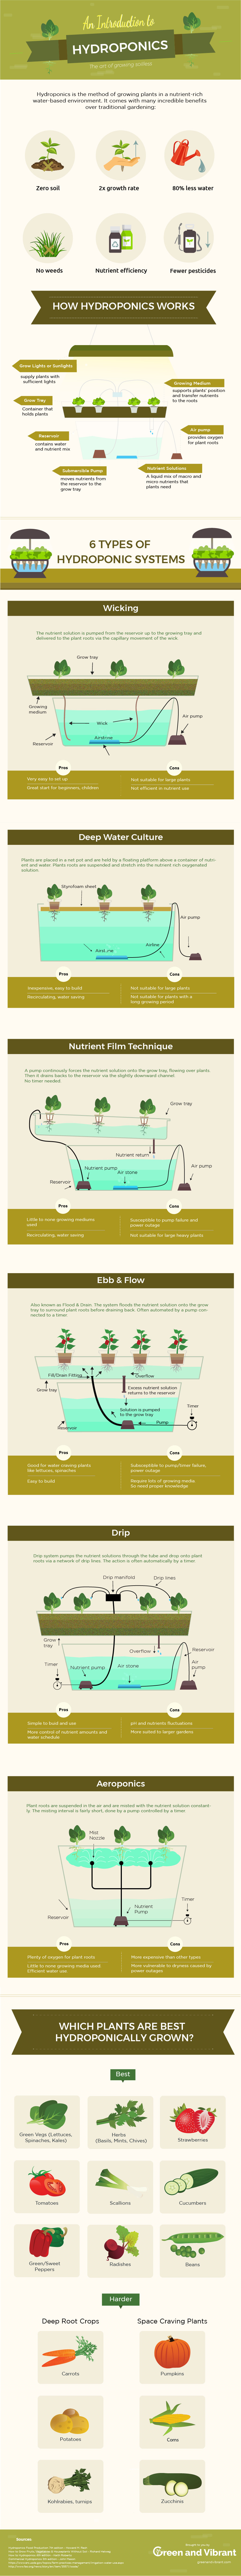 hydroponic-gardening-infographic-1